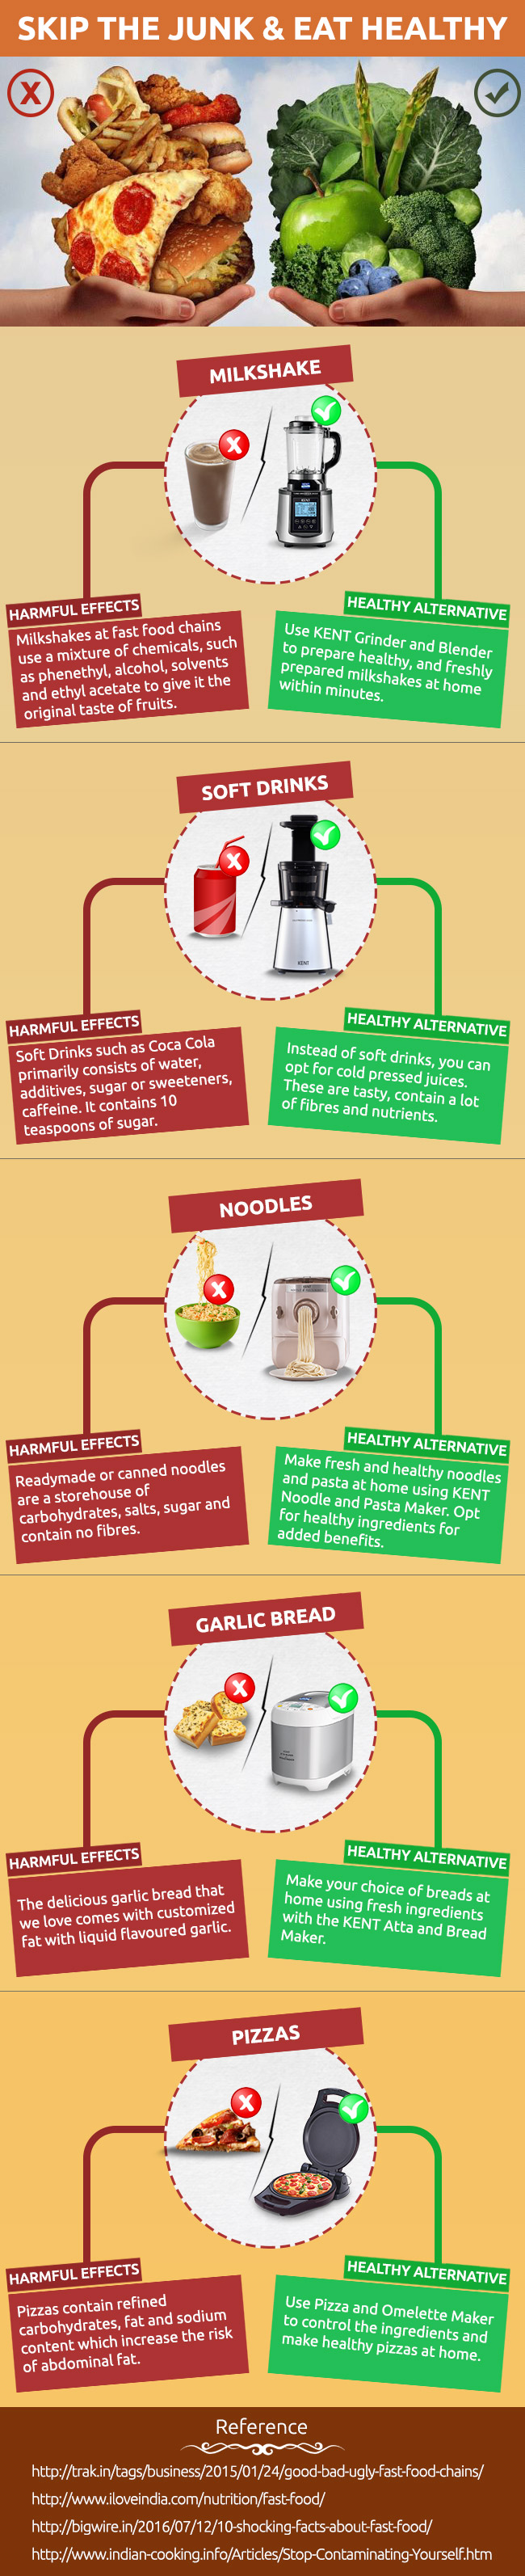 Healthy Alternatives to Junk Food